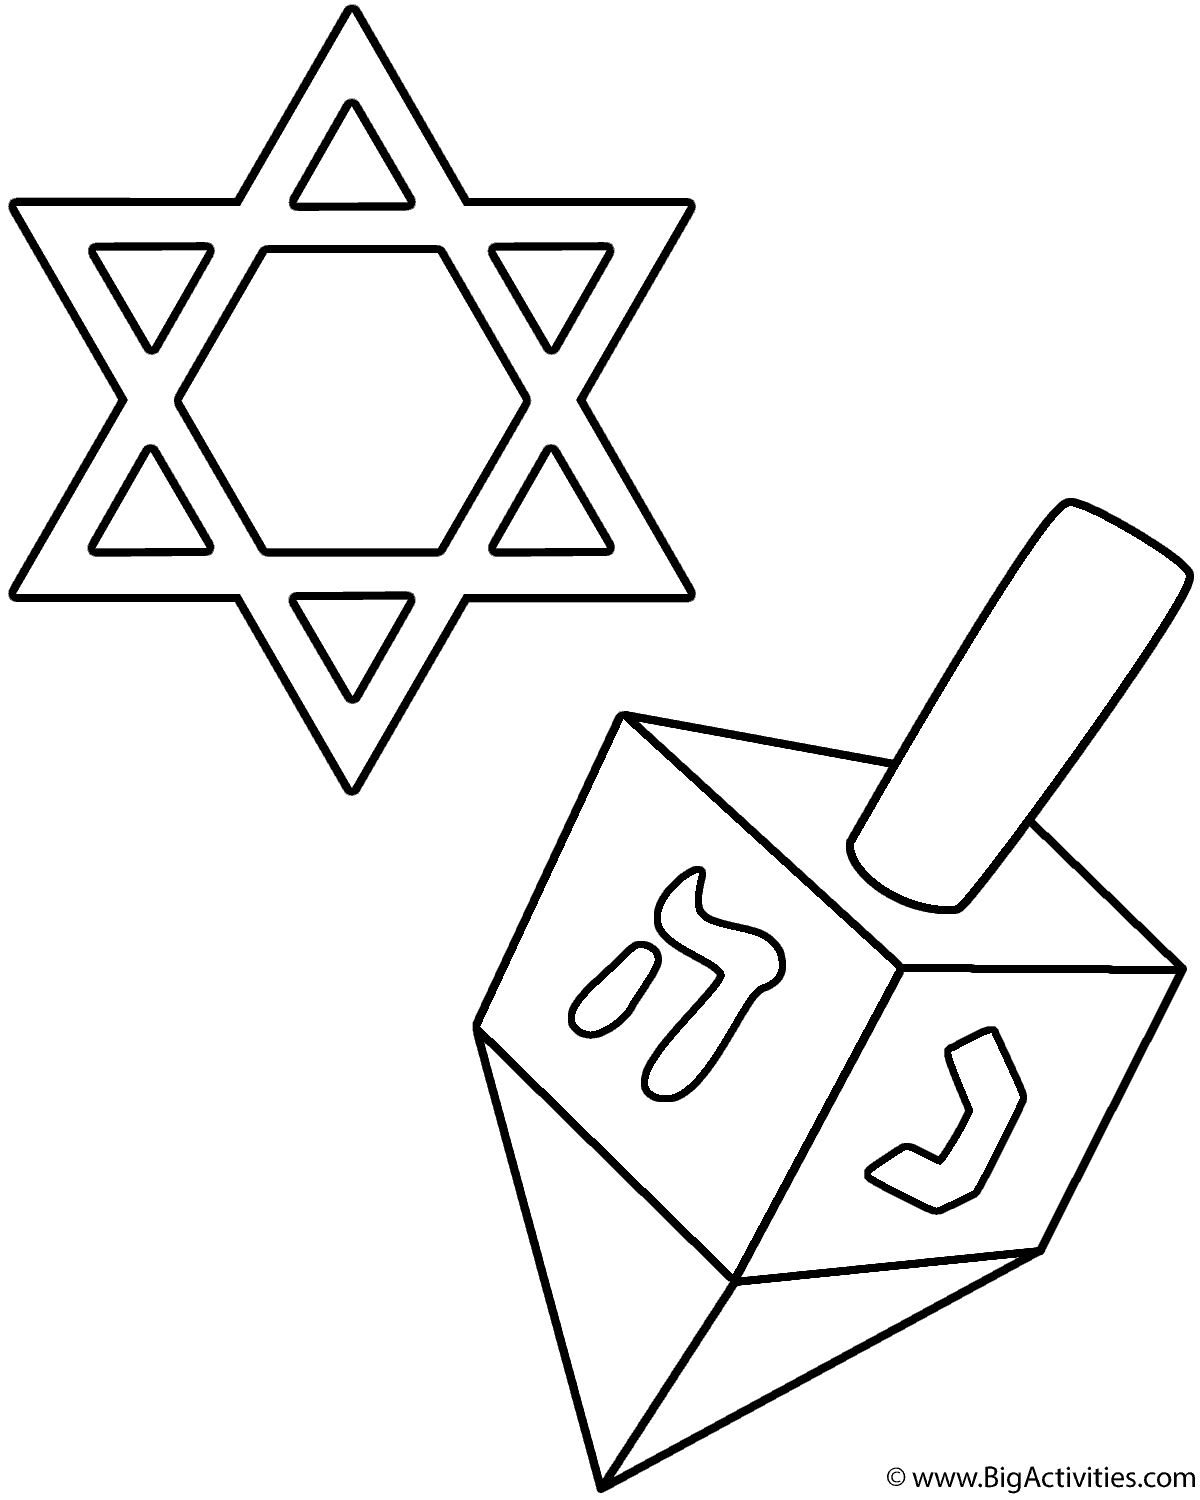 Dreidel And Star Of David Coloring Page Hanukkah Coloring Pages Hanukkah Star Of David